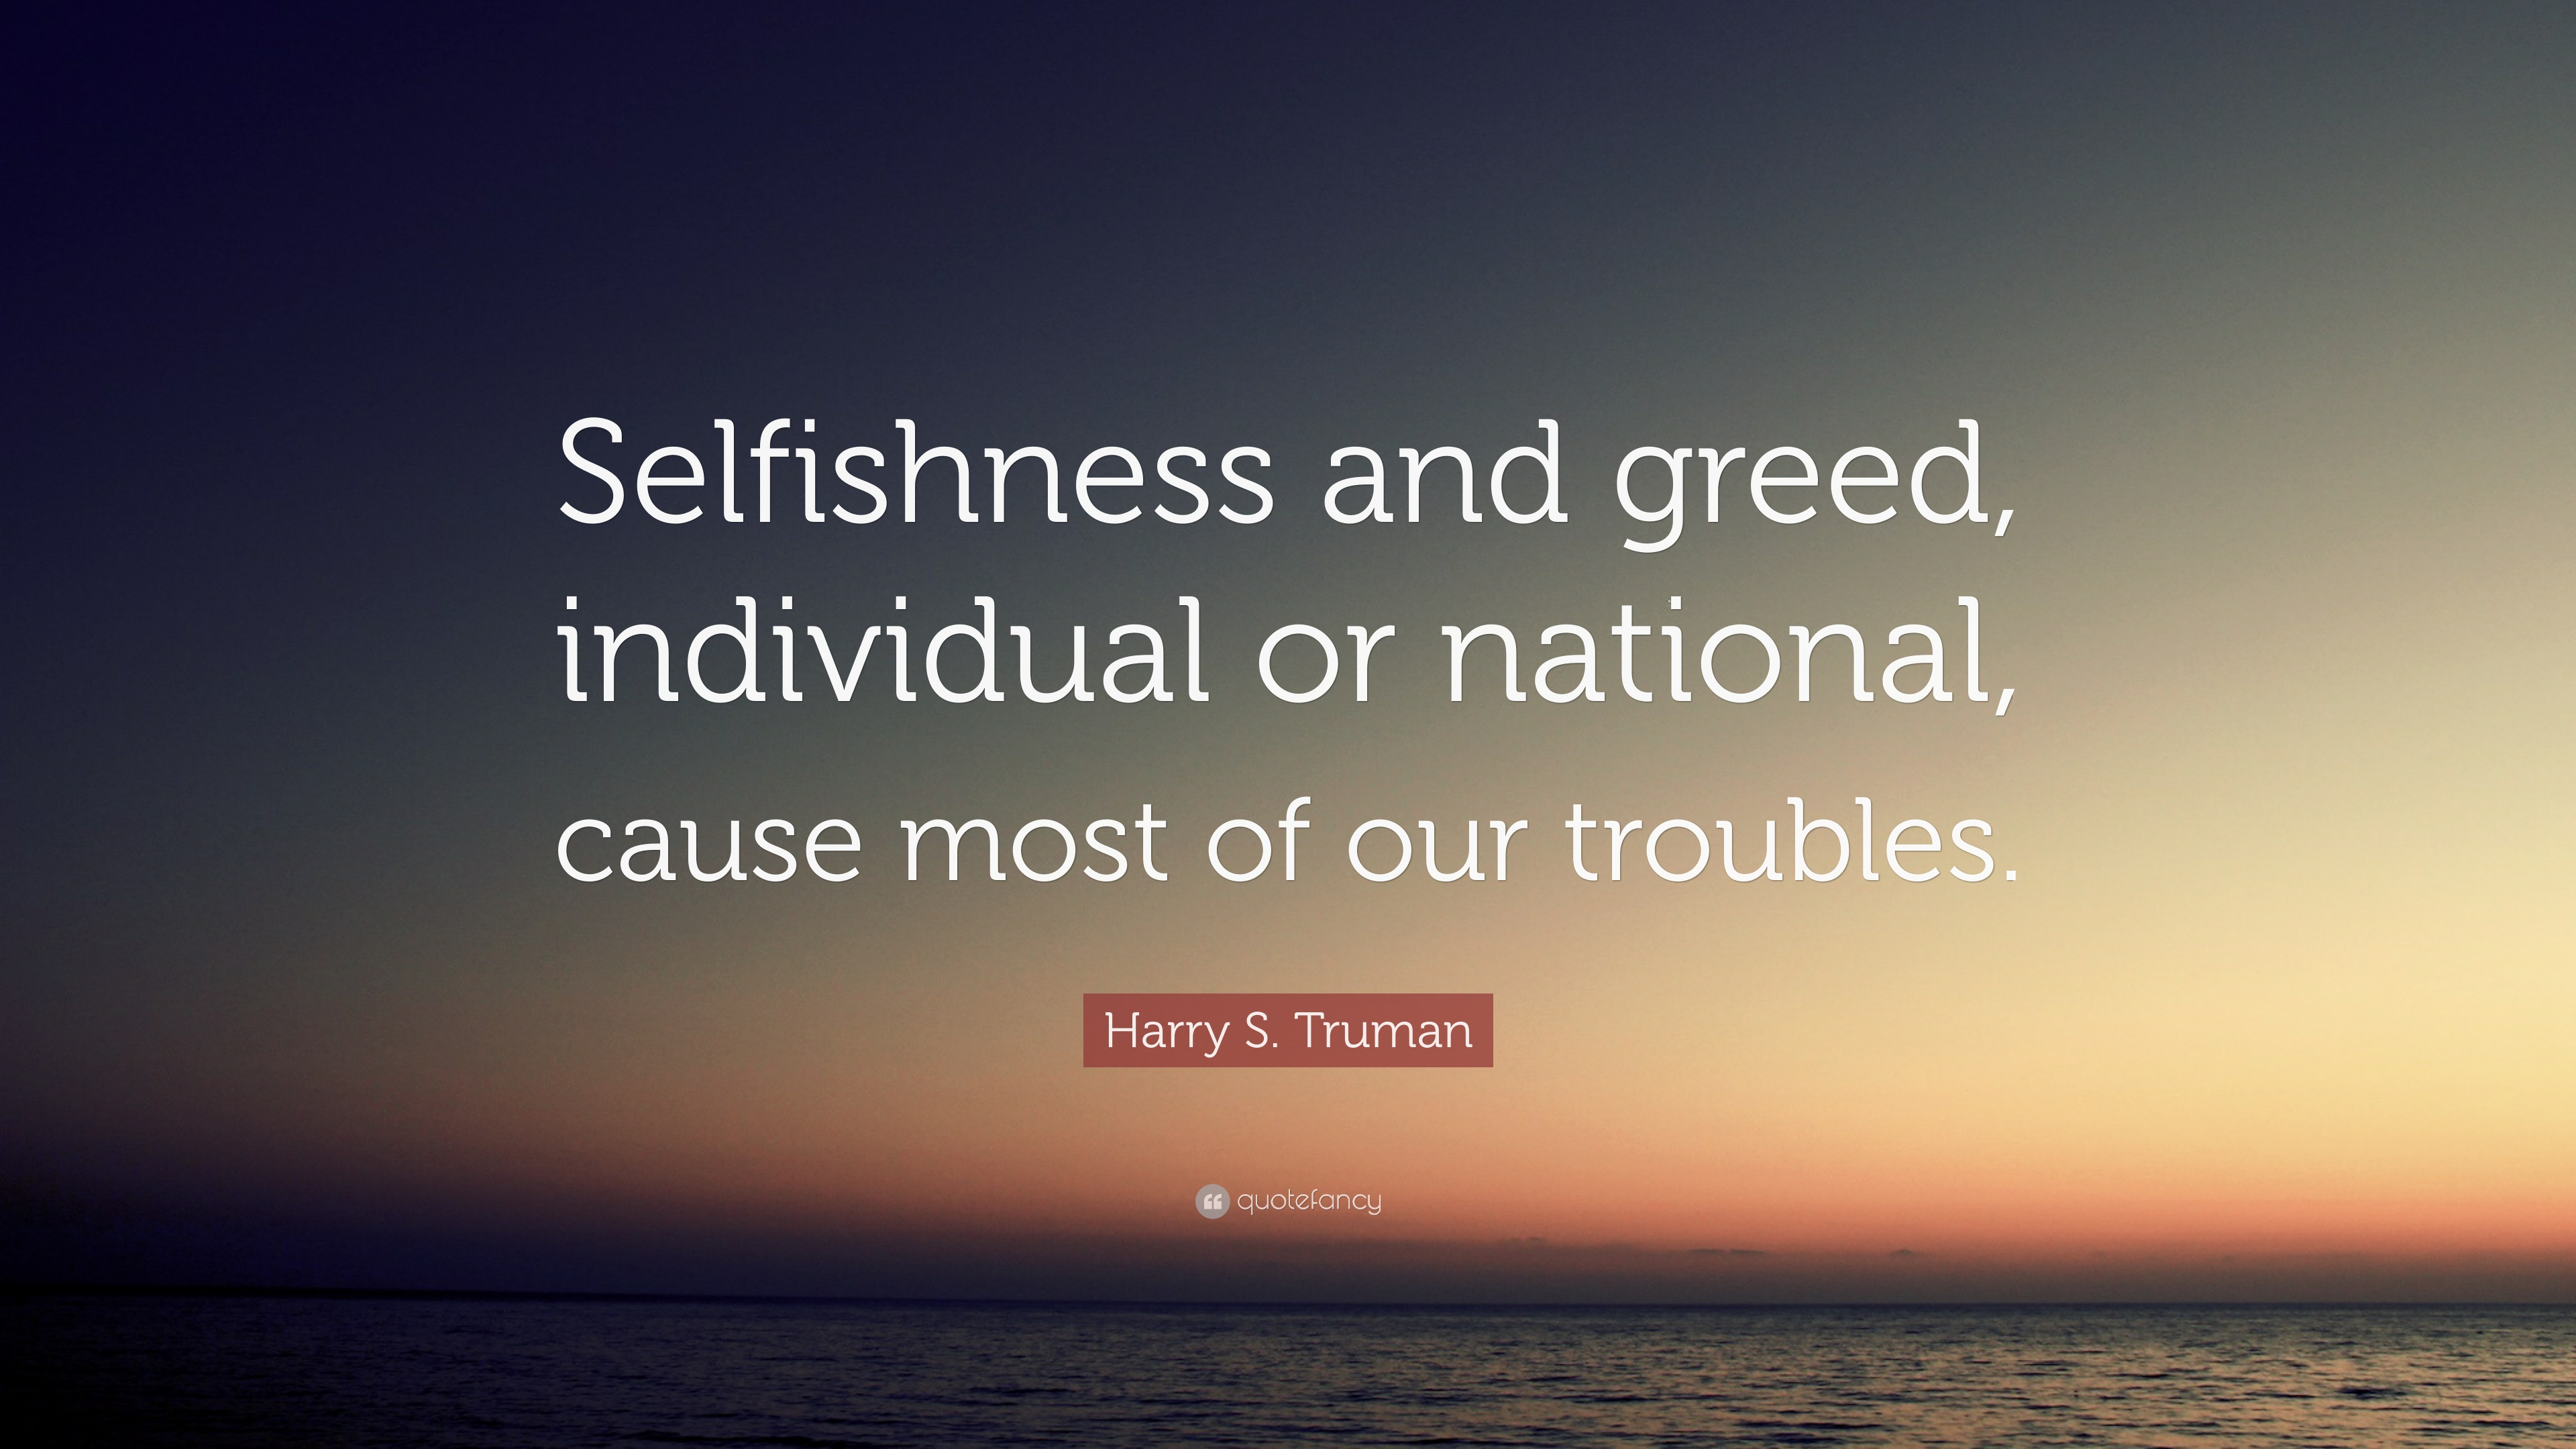 Harry S Truman Quote Selfishness And Greed Individual Or